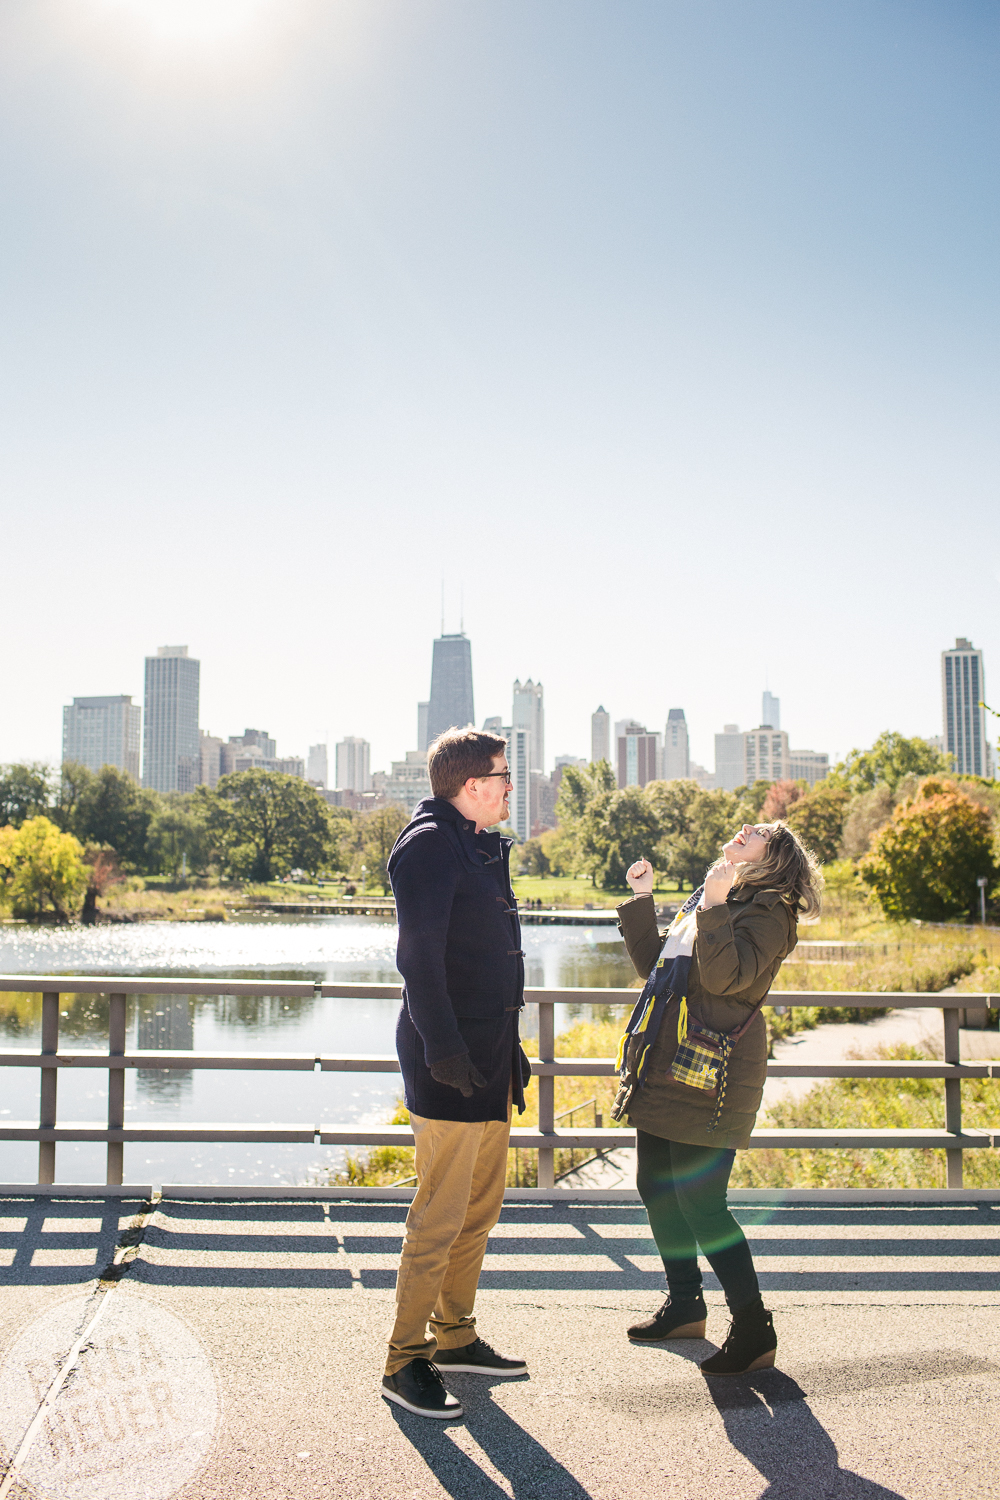 LincolnPark Proposal_Engagement Photography-007.jpg